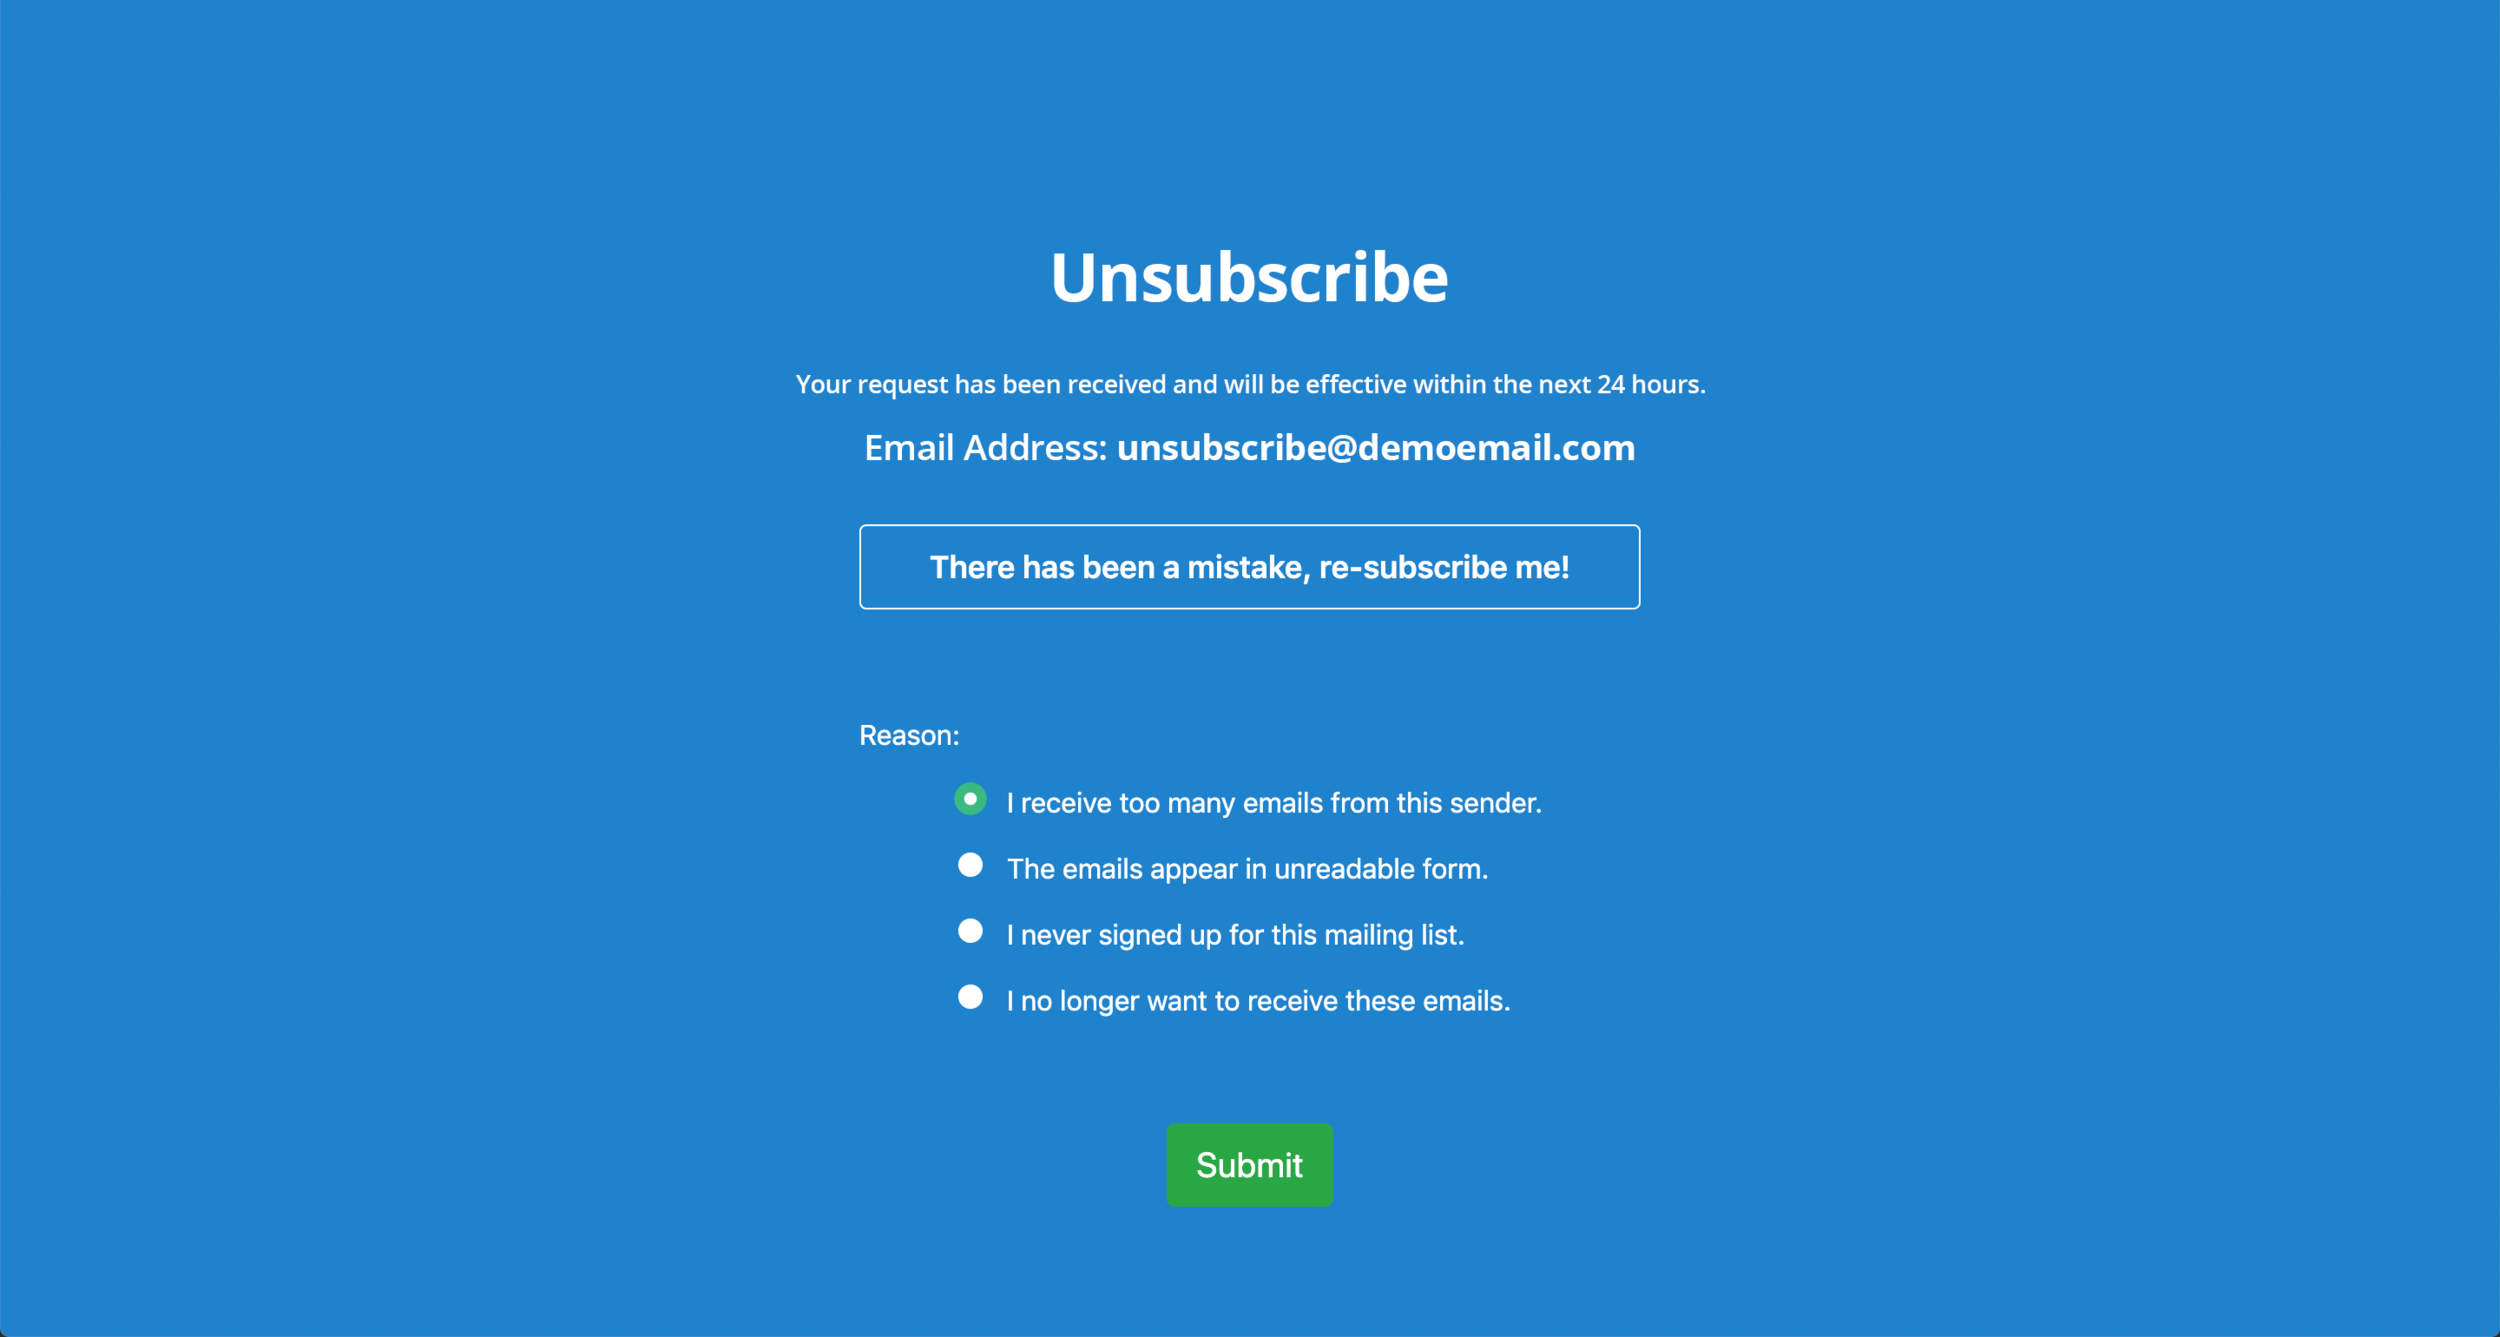 Email Unsubscribe Links:  Upon clicking the unsubscribe link, the record will be taken to this page to confirm their unsubscribe request.